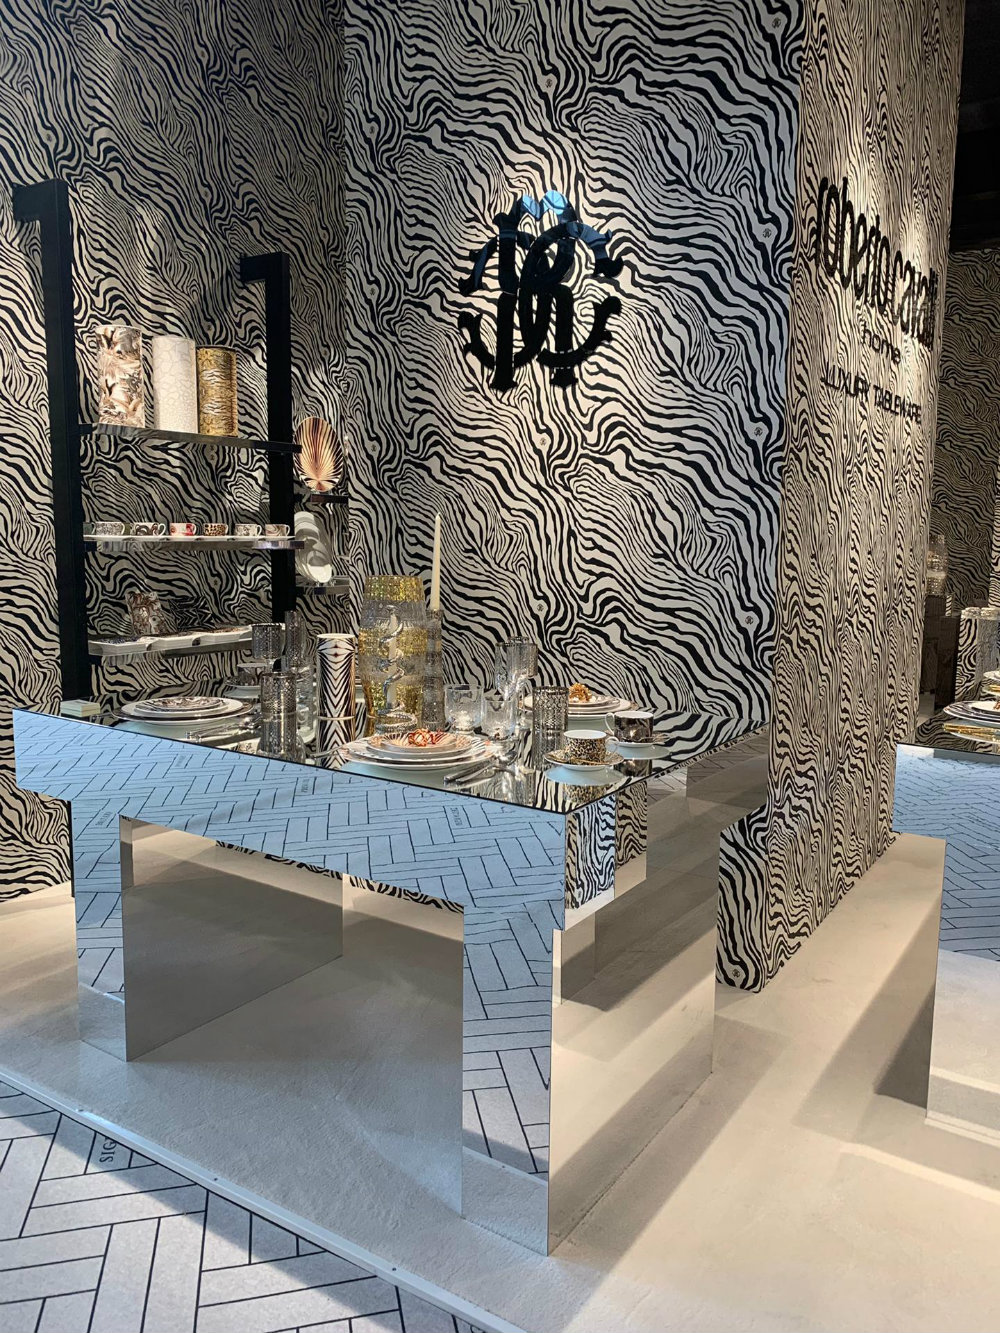 Maison et Objet 2019 - The Highlights 07 maison et objet 2019 Maison et Objet 2019 – The Highlights Maison et Objet 2019 The Highlights 07